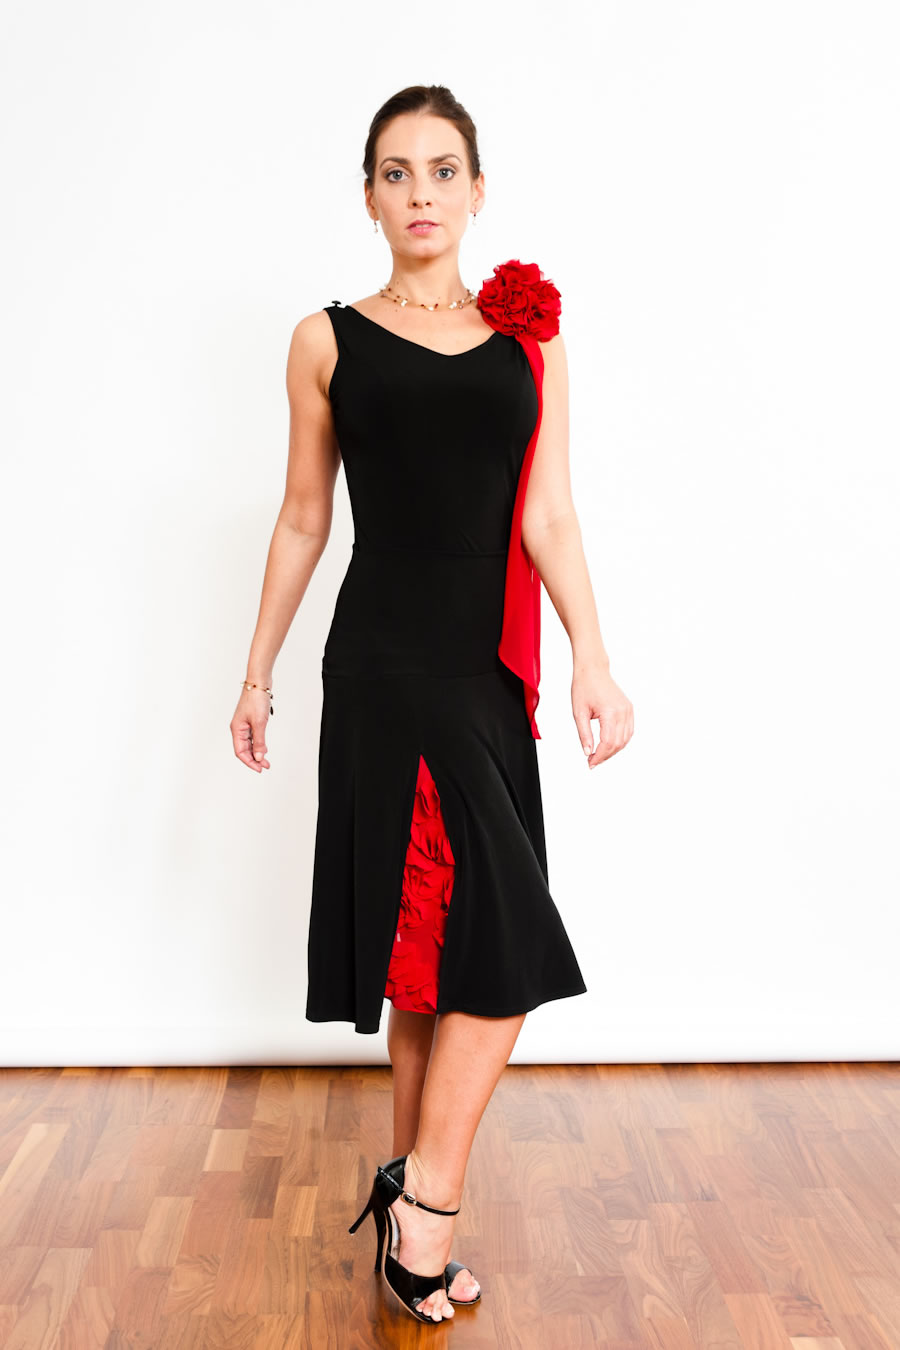 Tango Clothing Dresses Amp Fashion Made In The Uk Bloom